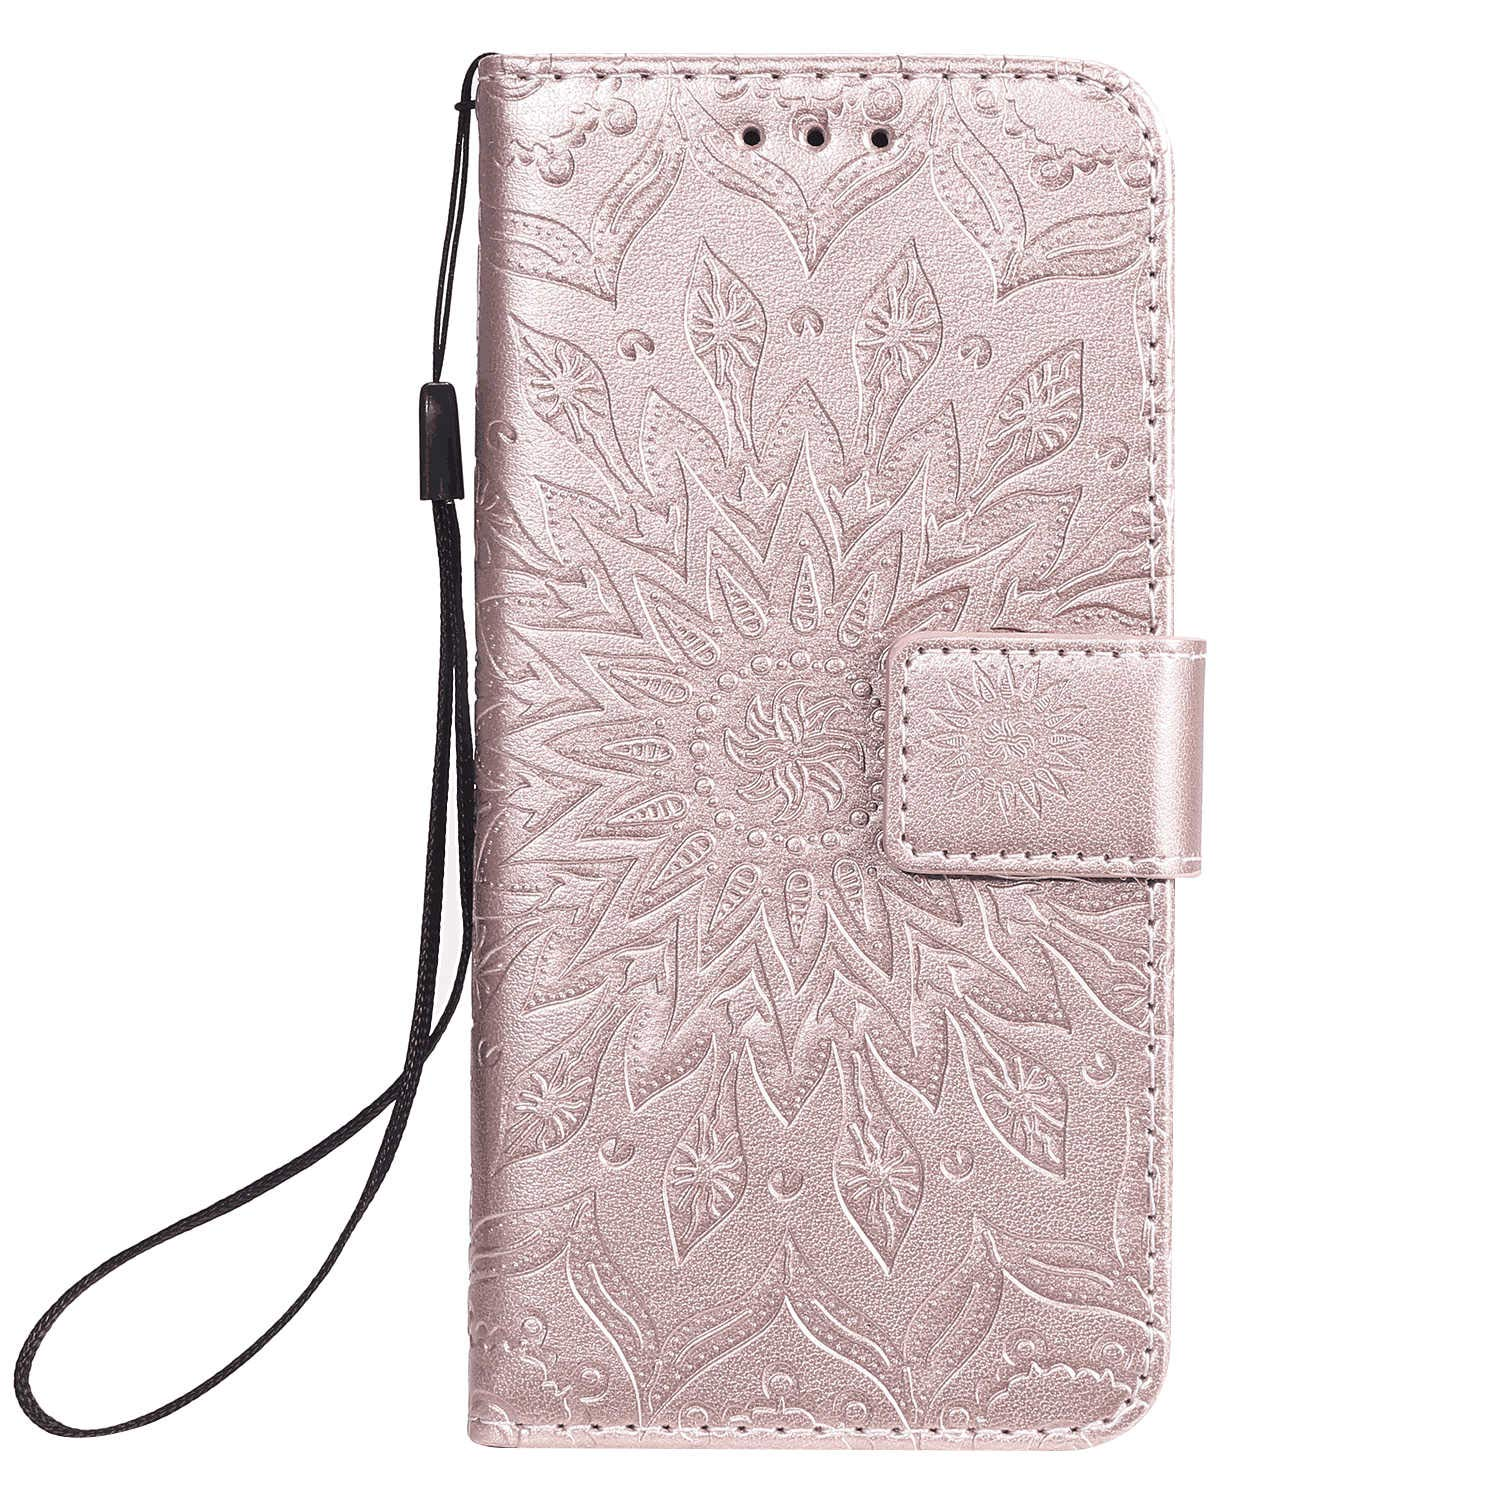 Leather Flip Case Fit for Samsung Galaxy S20, Rose Gold Wallet Cover for Samsung Galaxy S20